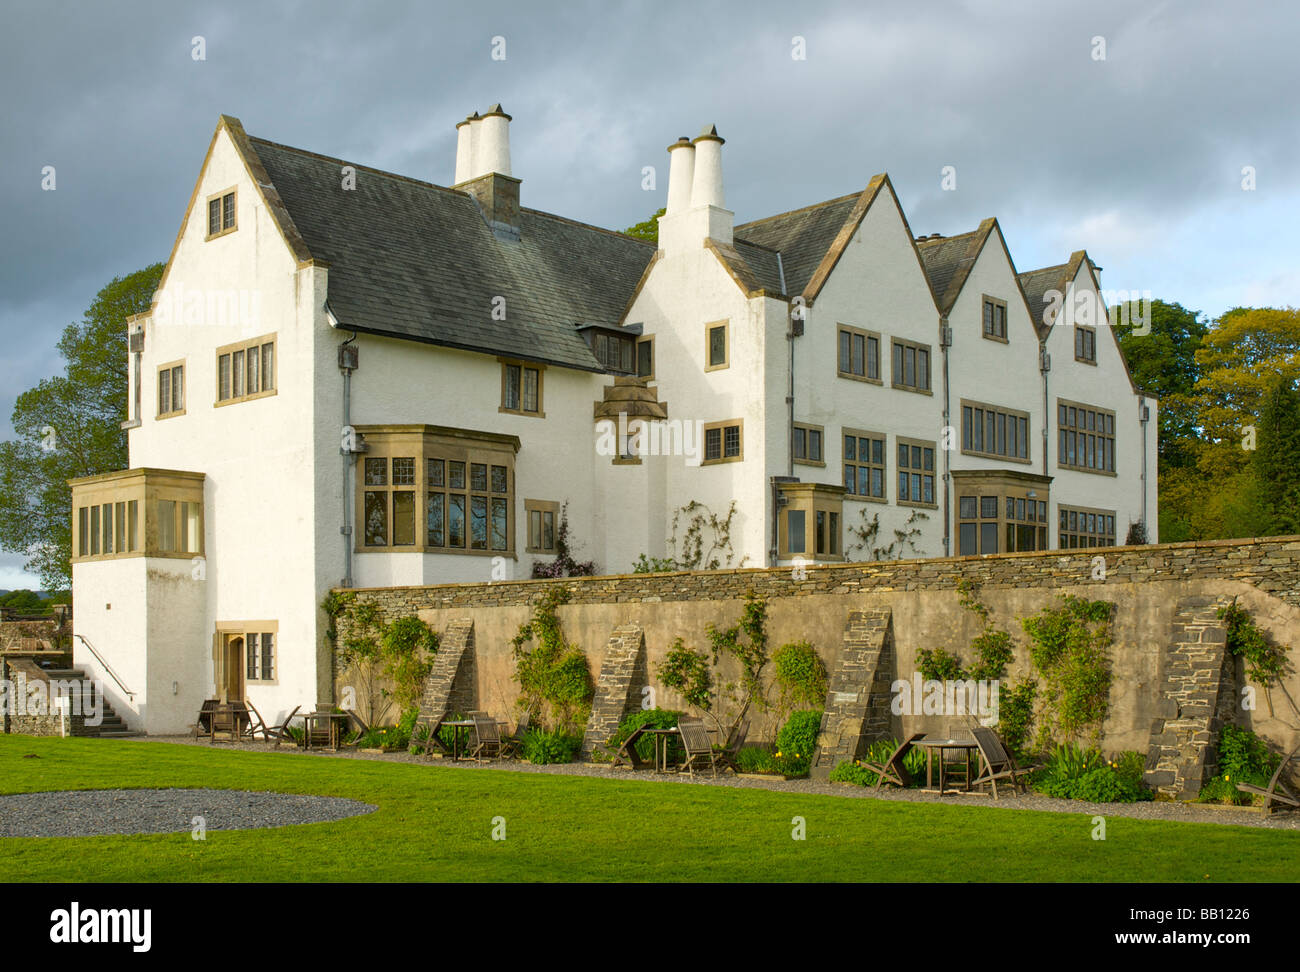 Blackwell Arts And Crafts House Overlooking Lake Windermere Near Bowness District National Park Cumbria England UK